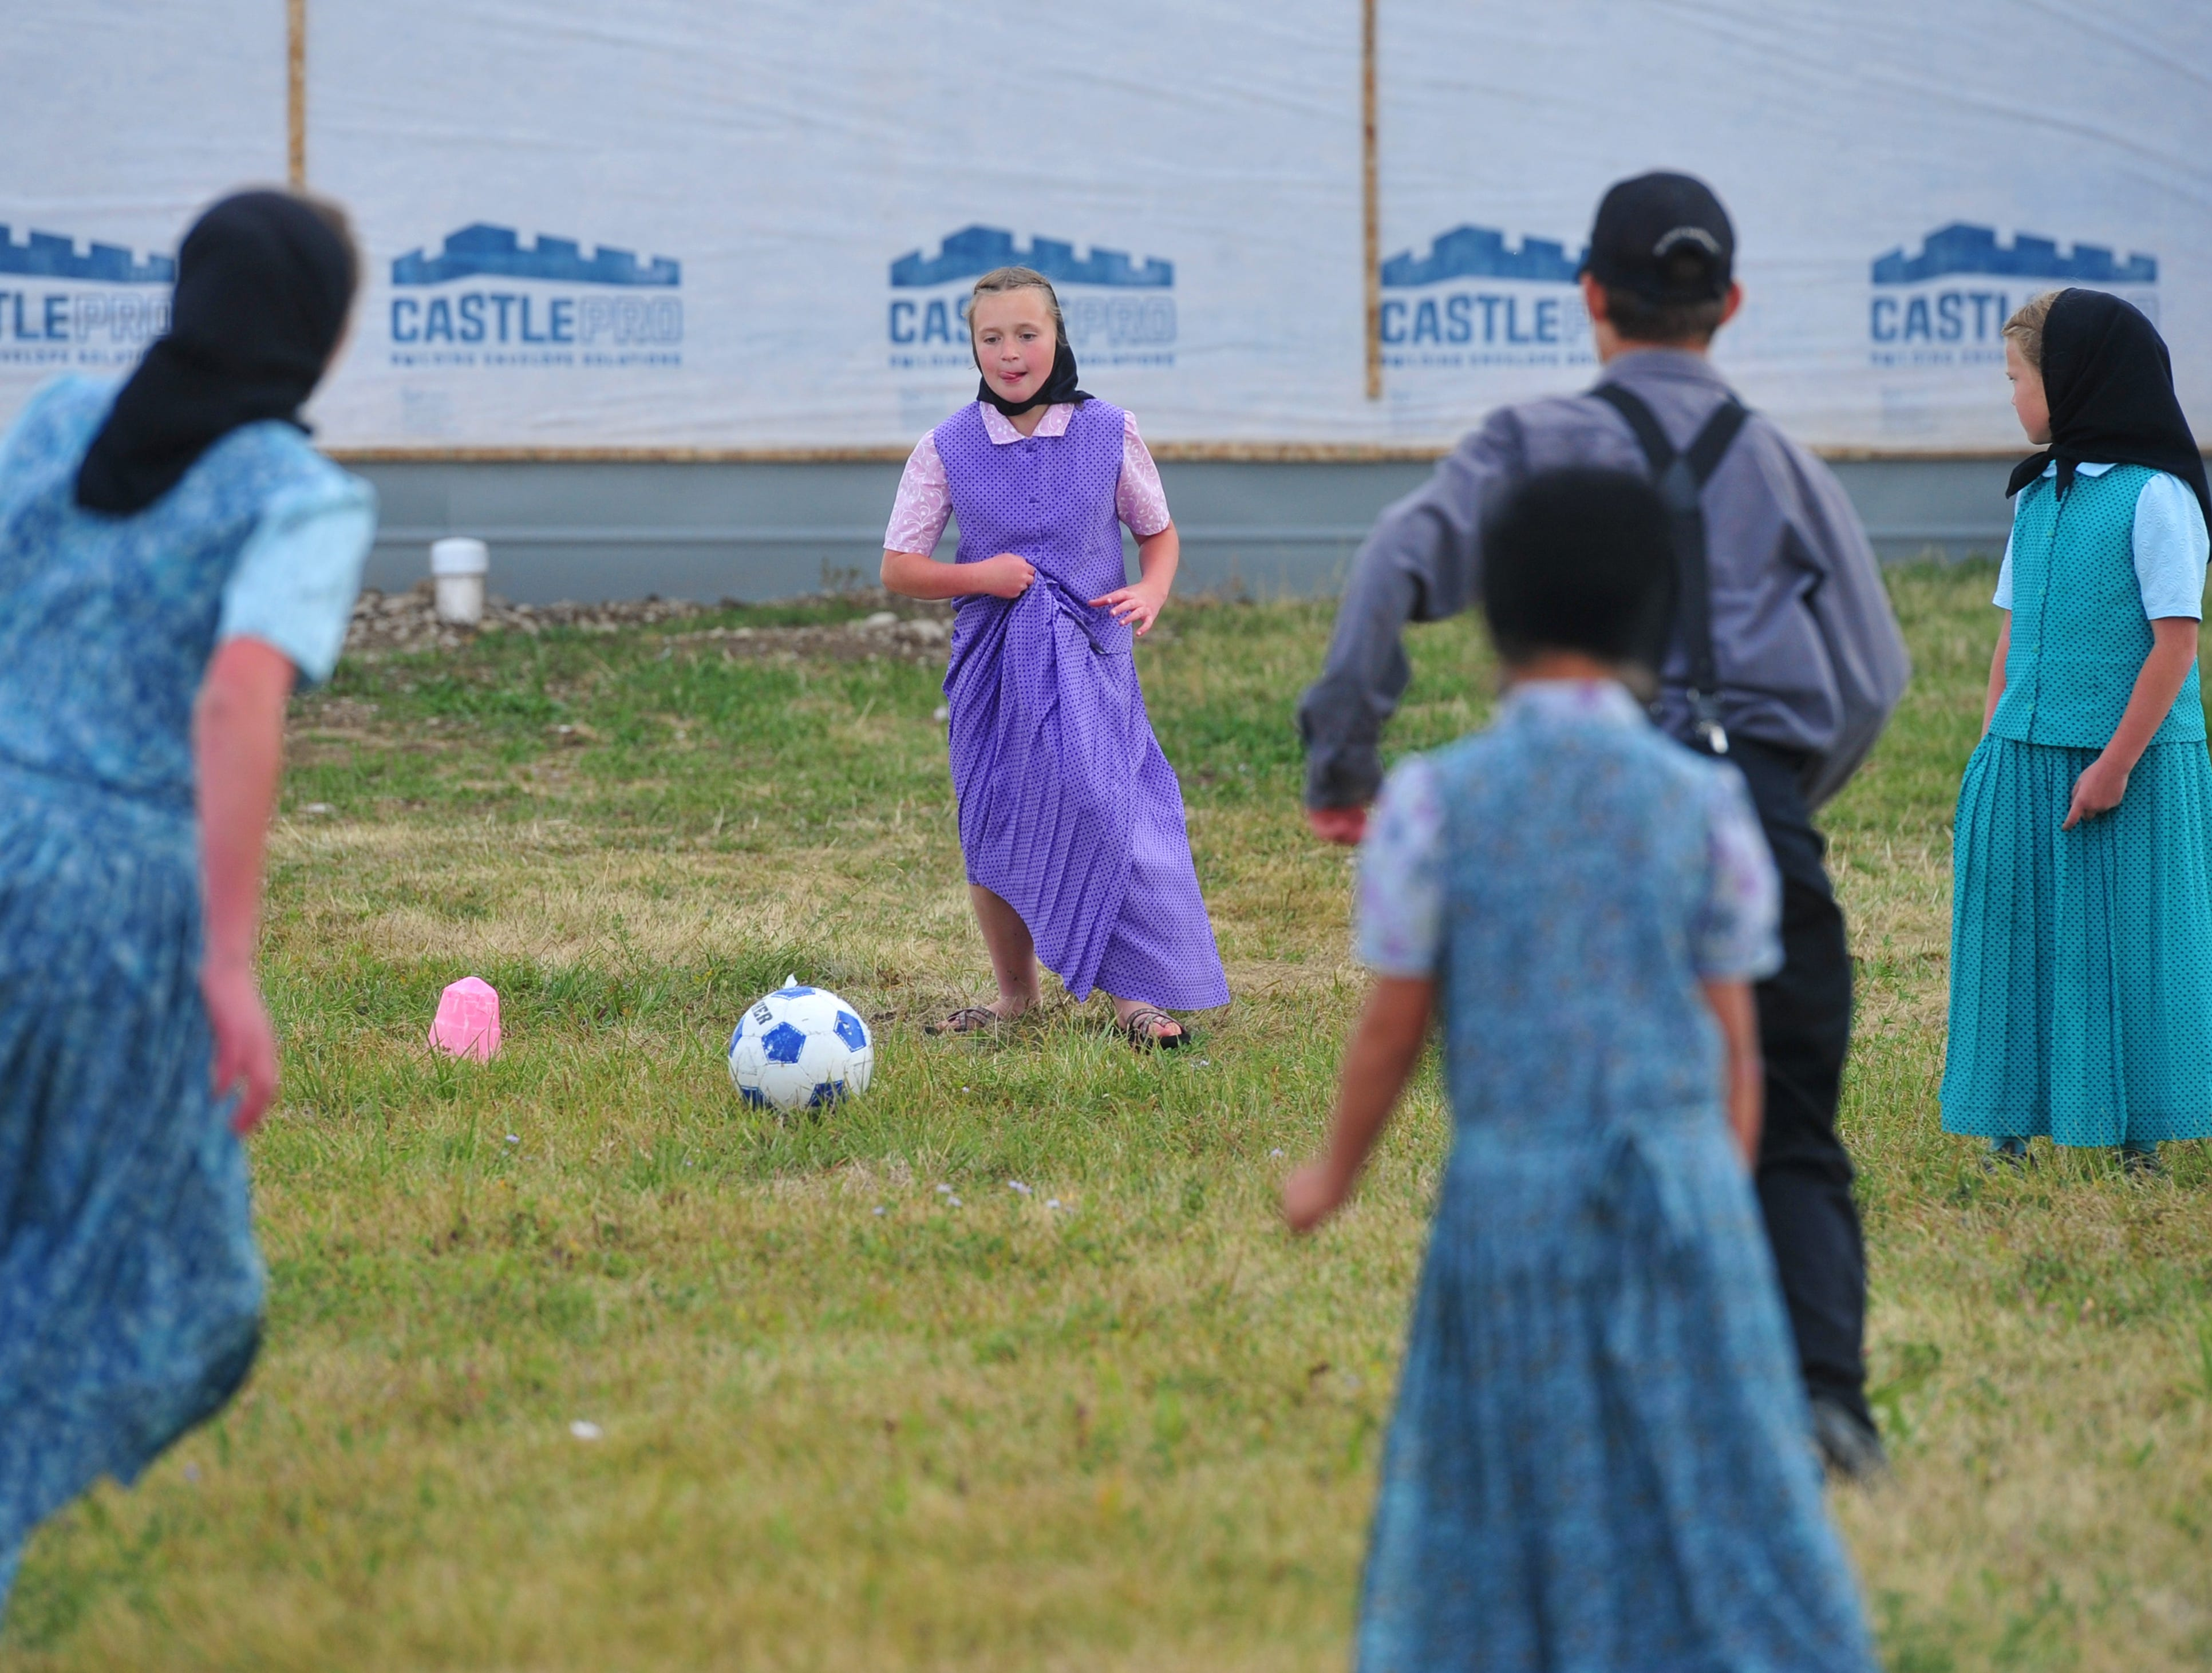 Soccer is a favorite pastime for the kids in Traci Manseau's class on the Deerfield Hutterite Colony.  Manseau is a teaching veteran of 23 years and she has spent her entire career teaching in one room rural school houses.  She is currently teaching 15 students across seven different grade levels at the Deerfield Hutterite Colony in North Central Montana's Fergus County.